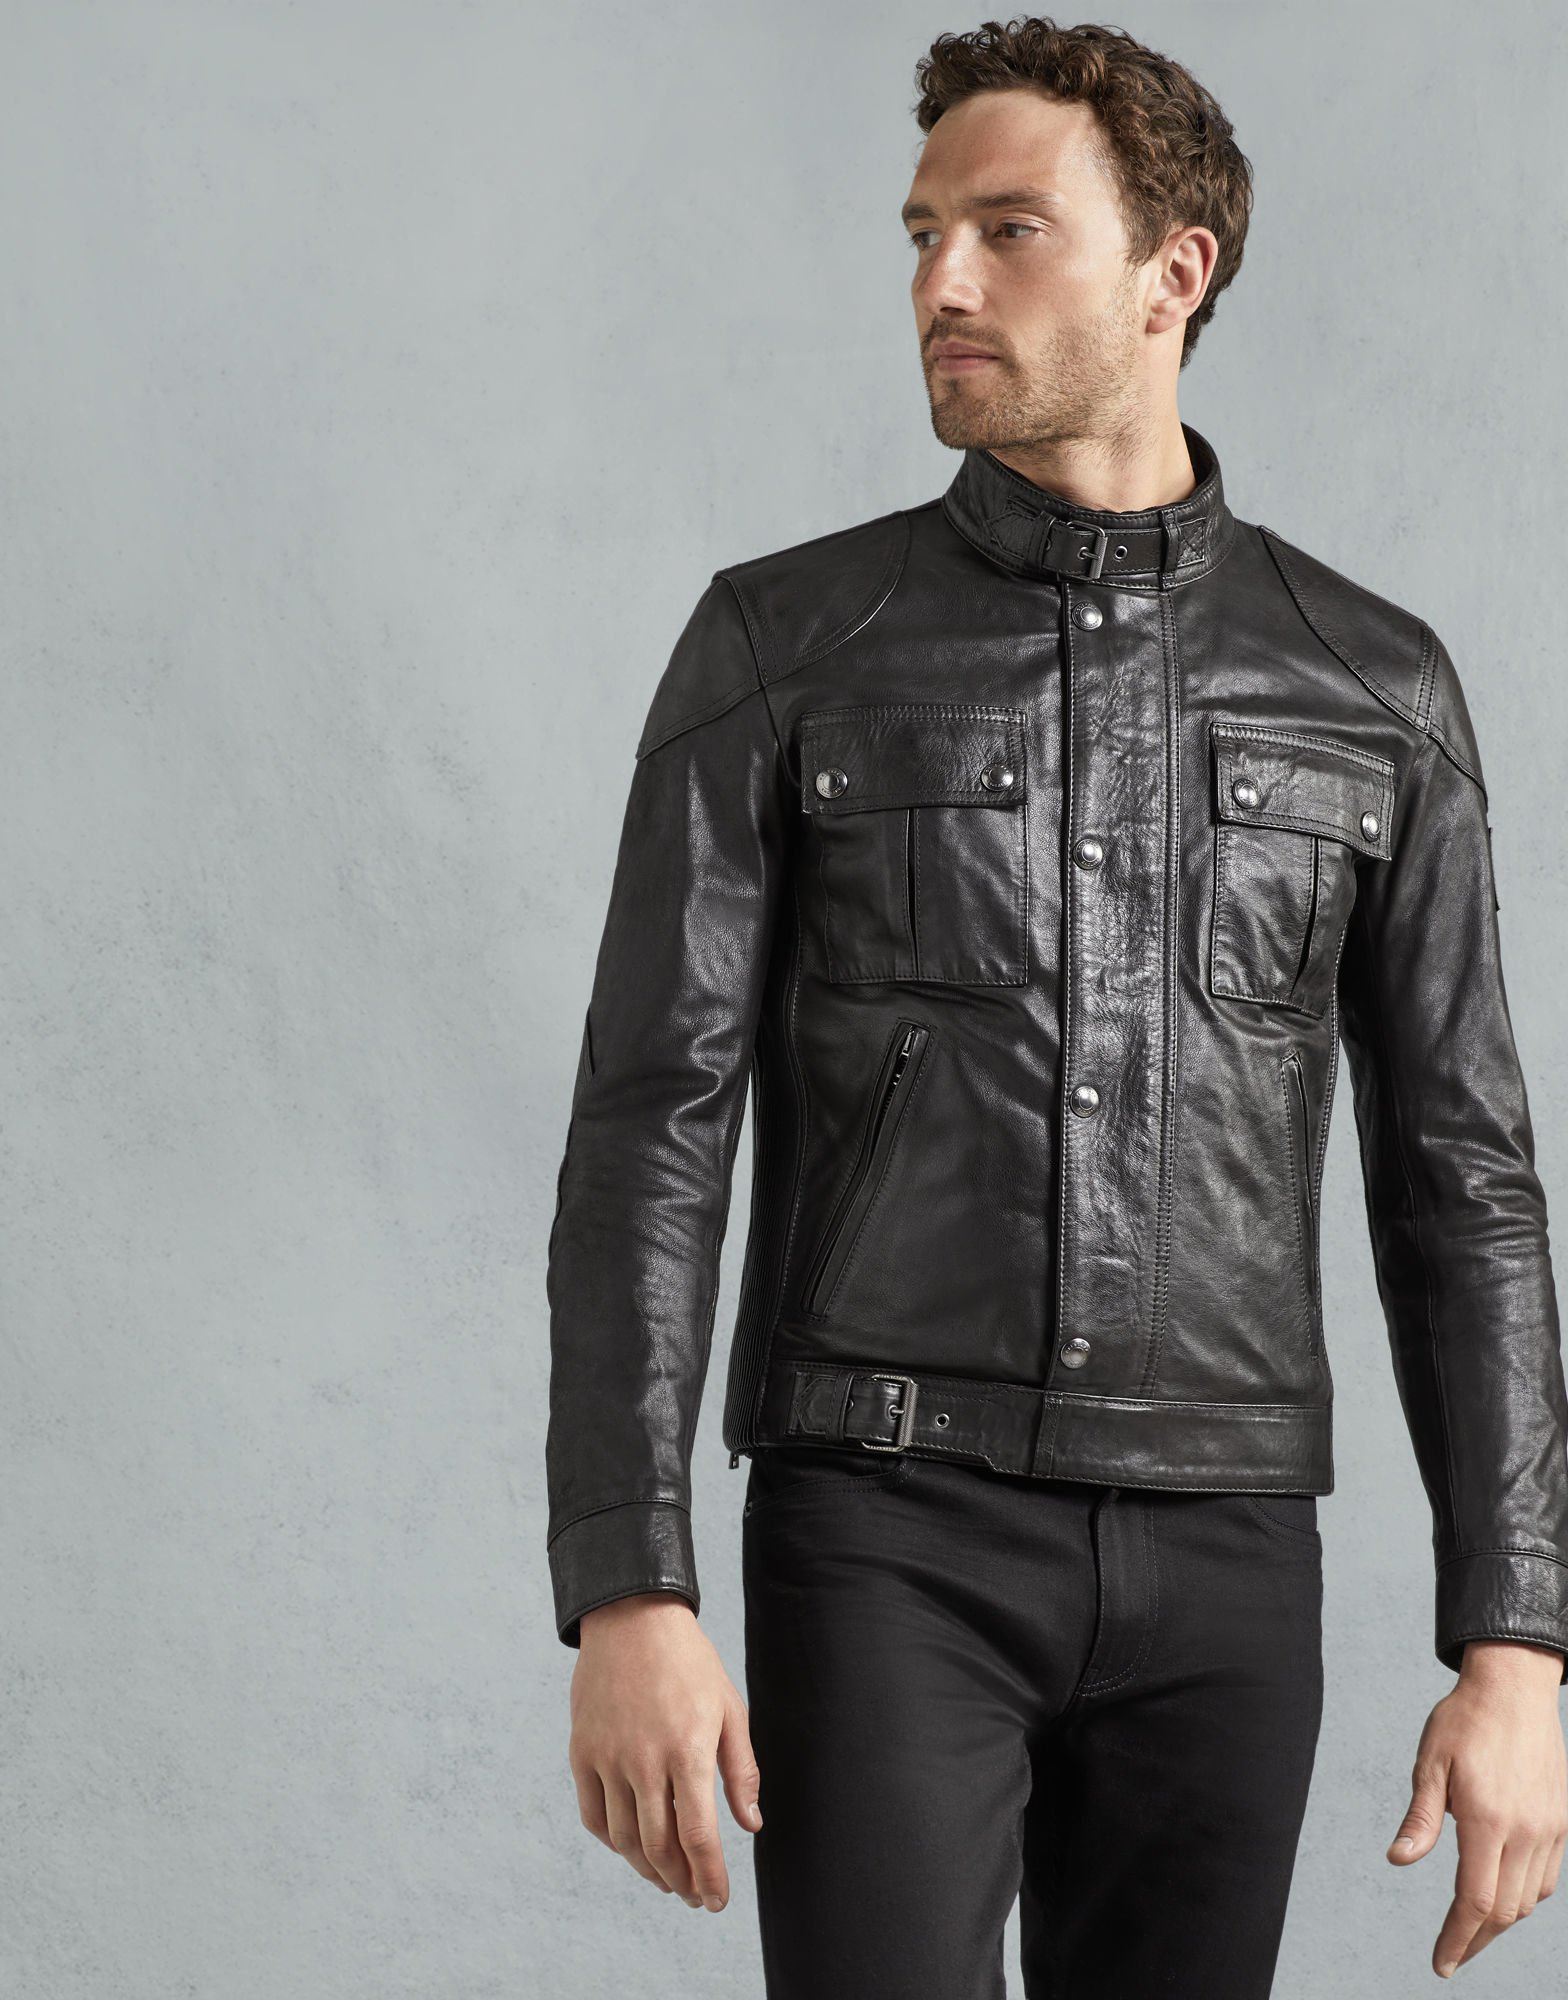 BELSTAFF Leather Jackets- exclusive designer fashion for style-conscious and trendsetters